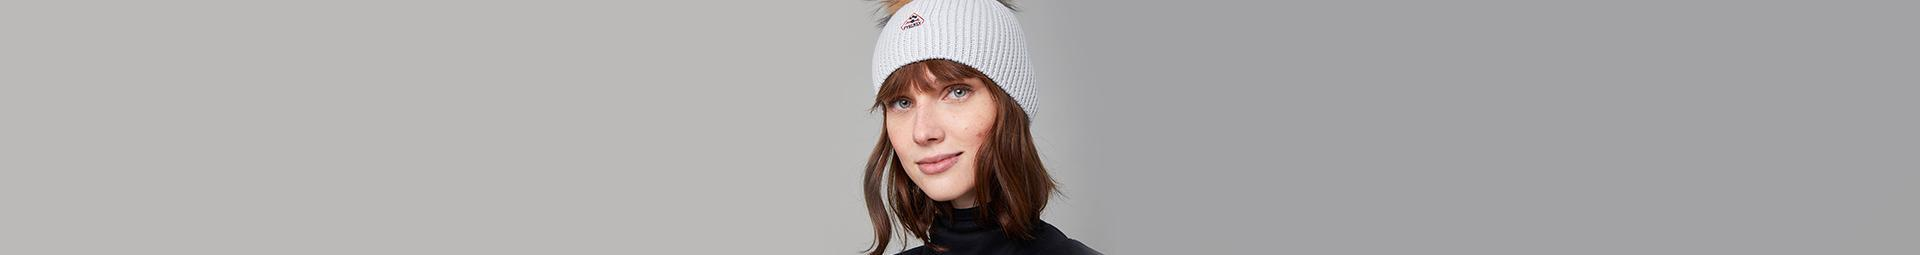 Beanies for women, warm and durable | Pyrenex